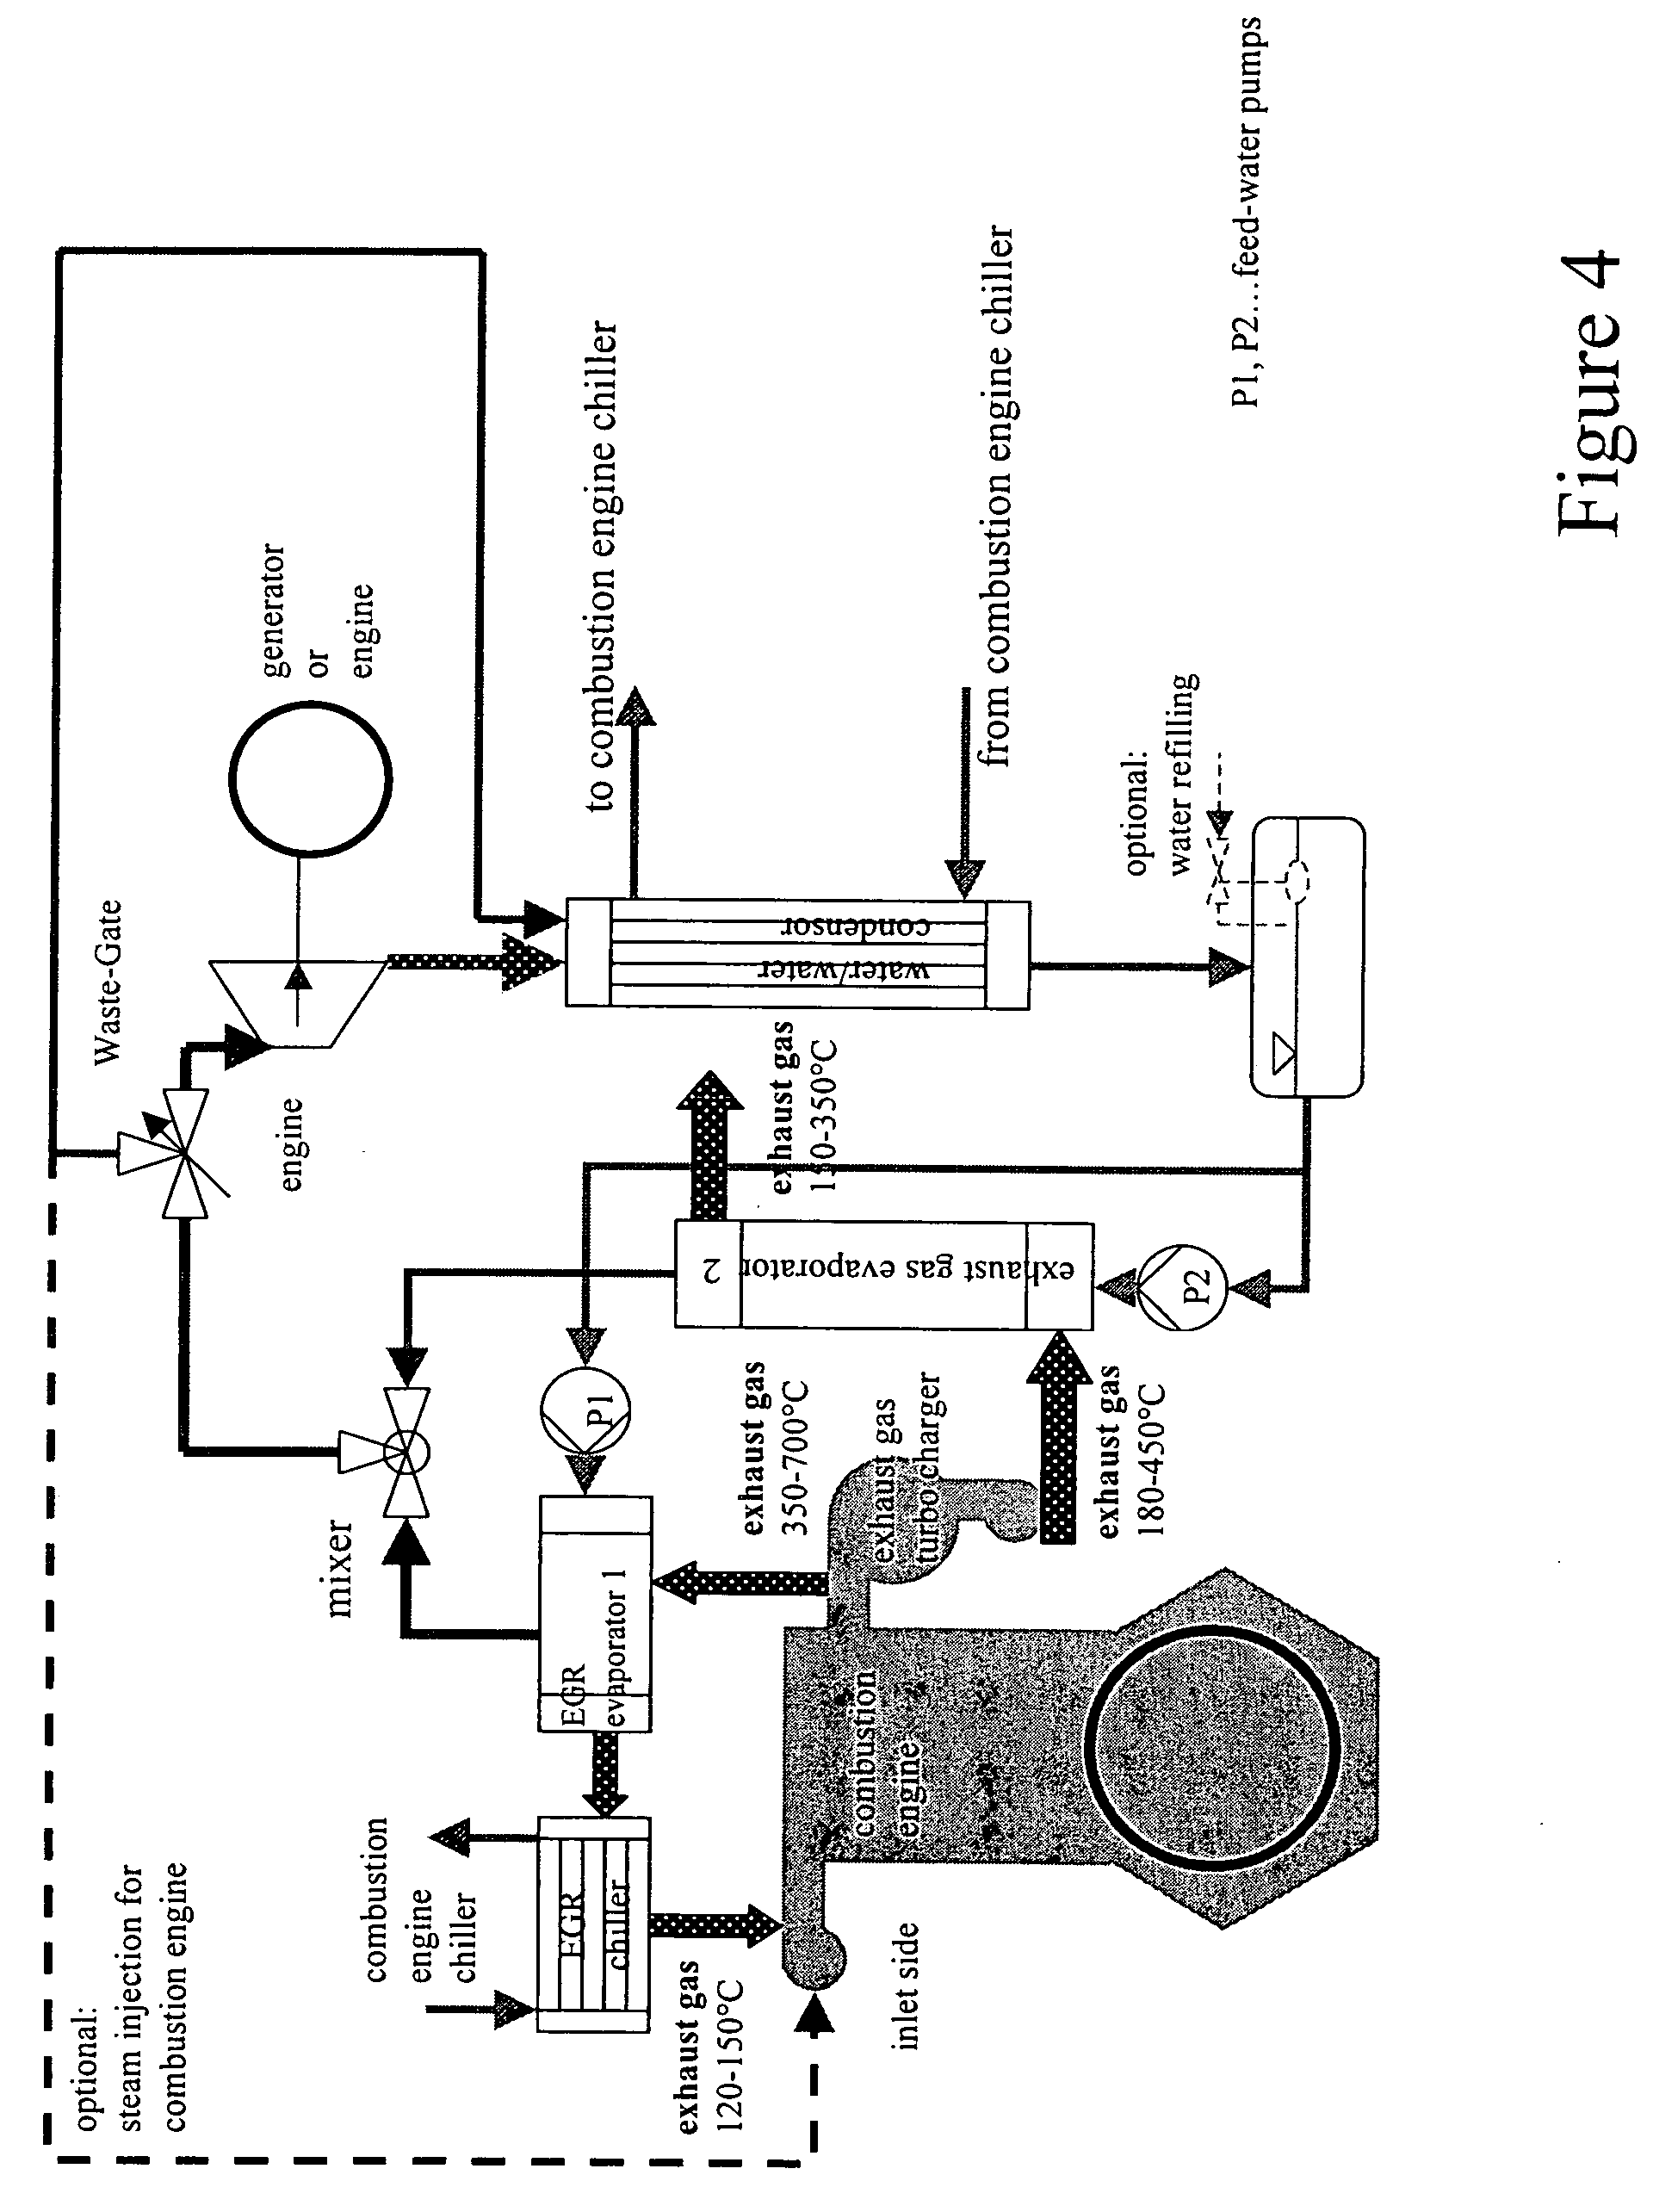 Chemical Engineering Problems And Solutions also Activities likewise Human Mechanical Energy as well US8371251 further Alternator Test. on chemical energy to mechanical engine